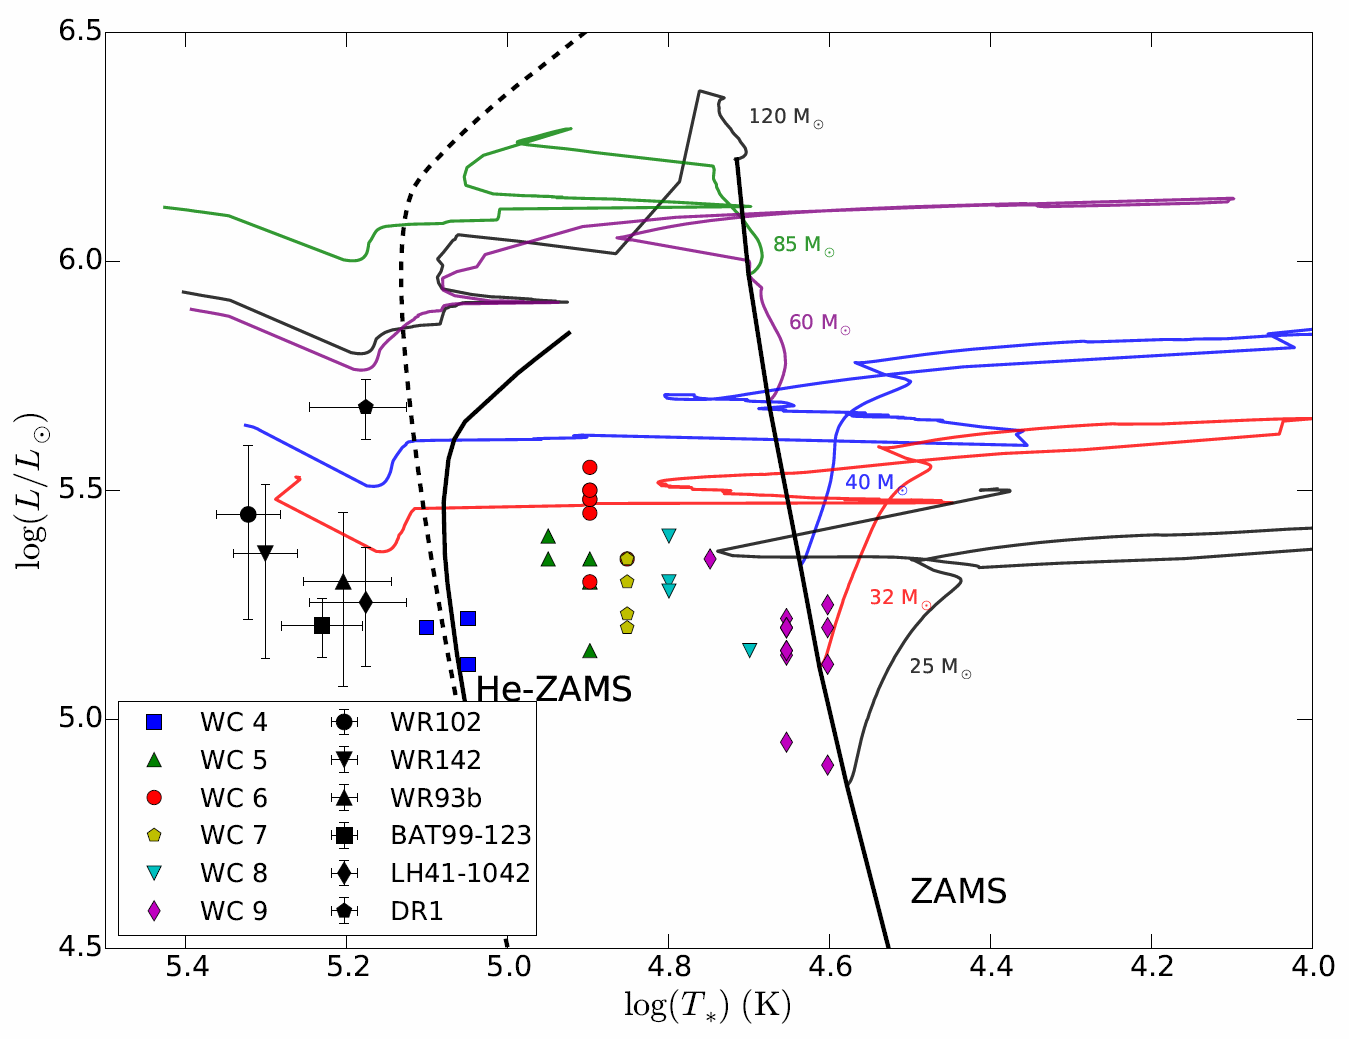 small resolution of locations of several wo stars on the hertzsprung russell diagram also indicated are several wc stars i e carbon sequence wolf rayet stars